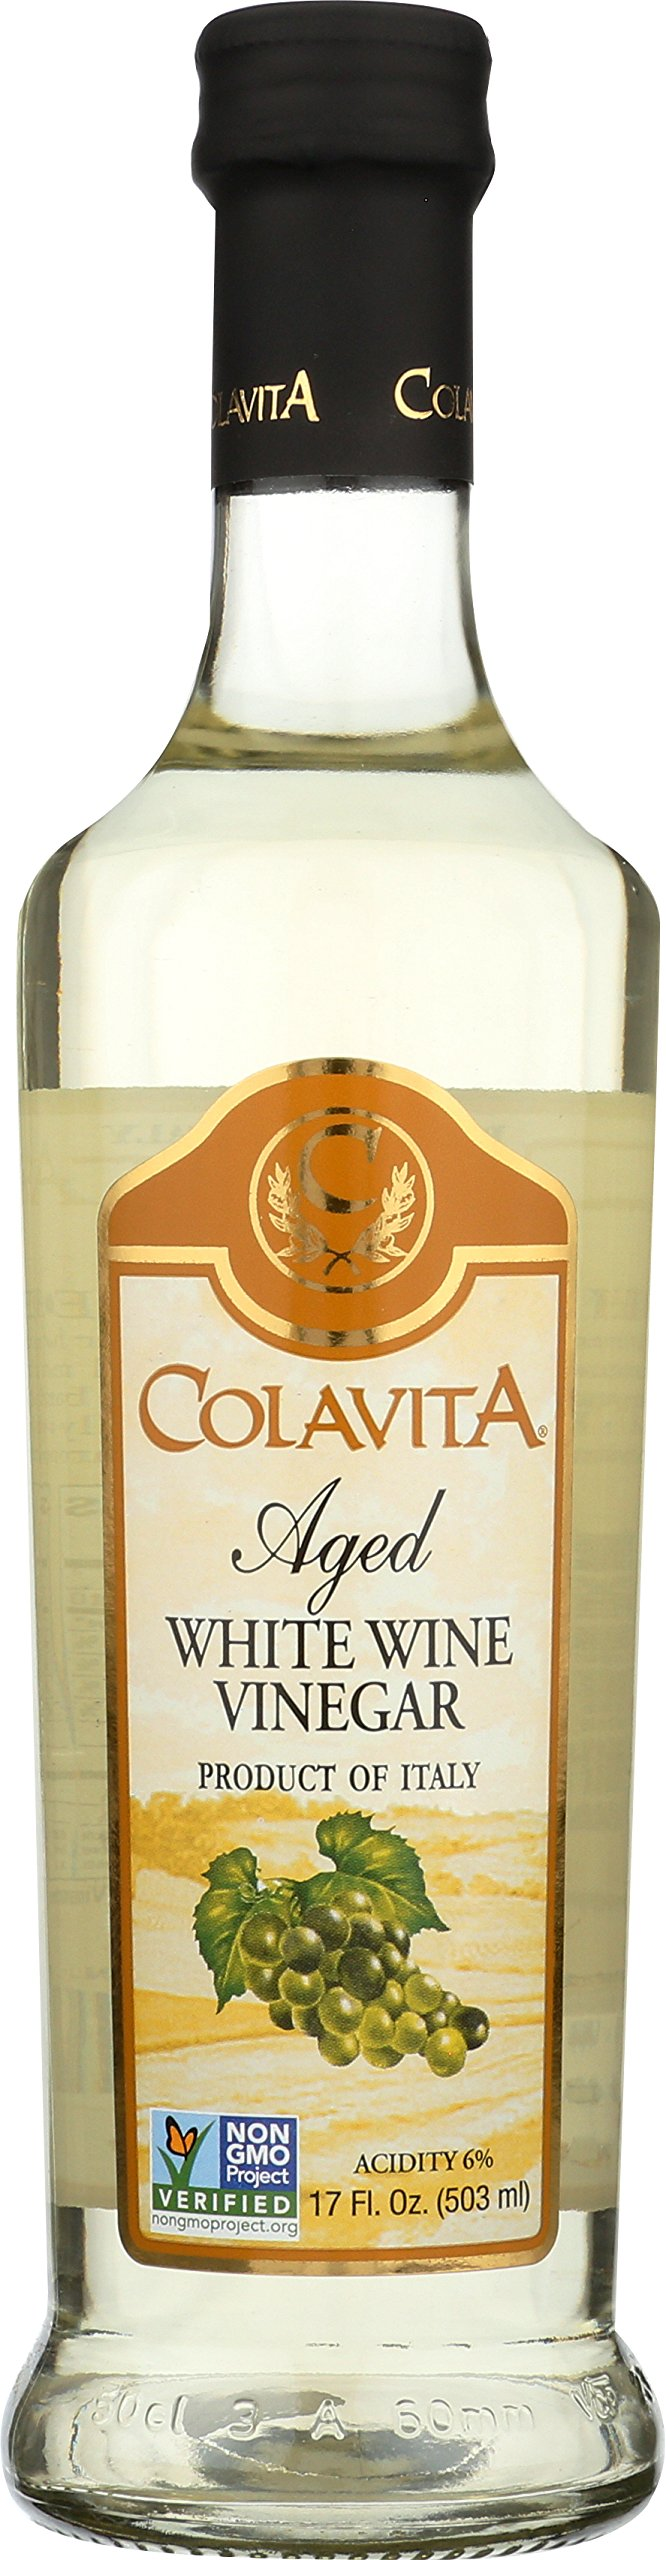 Colavita White Wine Vinegar, 17 oz by Colavita (Image #1)